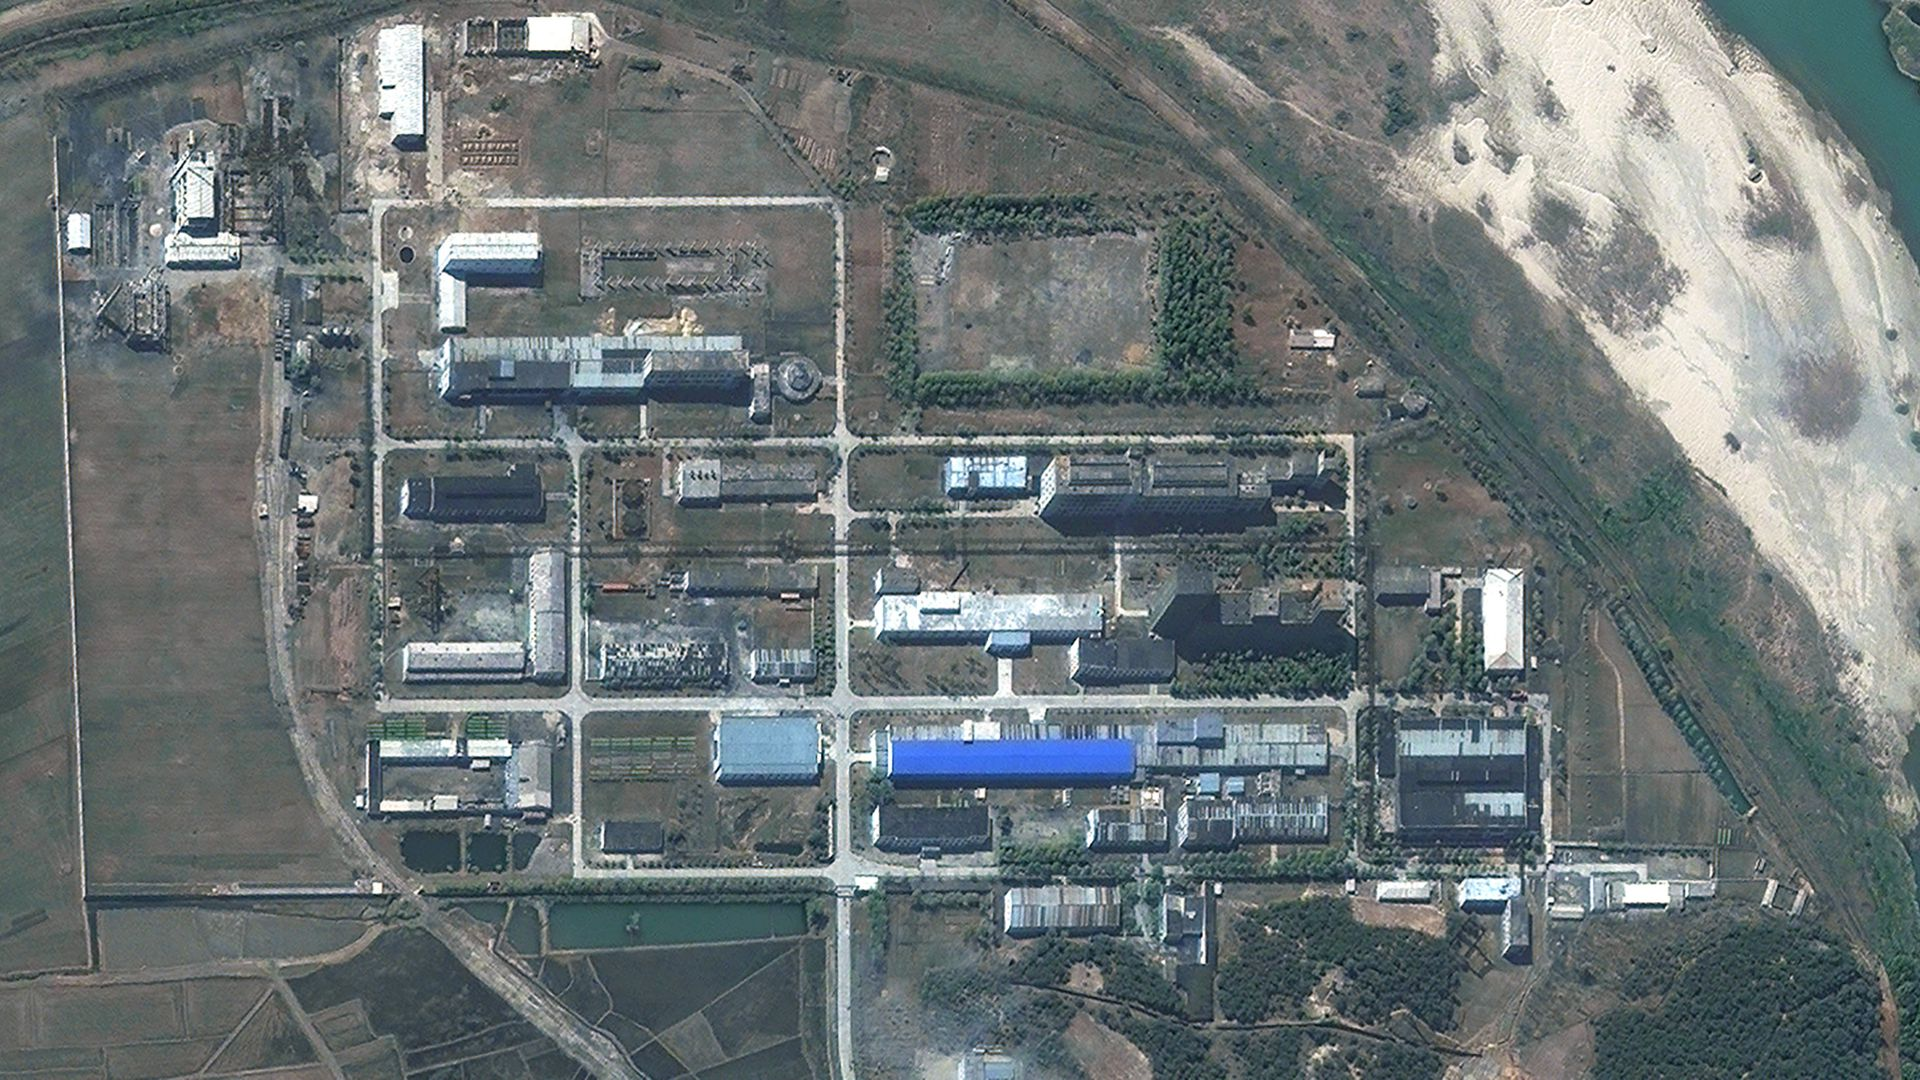 DigitalGlobe imagery of North Korea's 5MWe Reactor at the Yongbyon Nuclear Site in 2012.